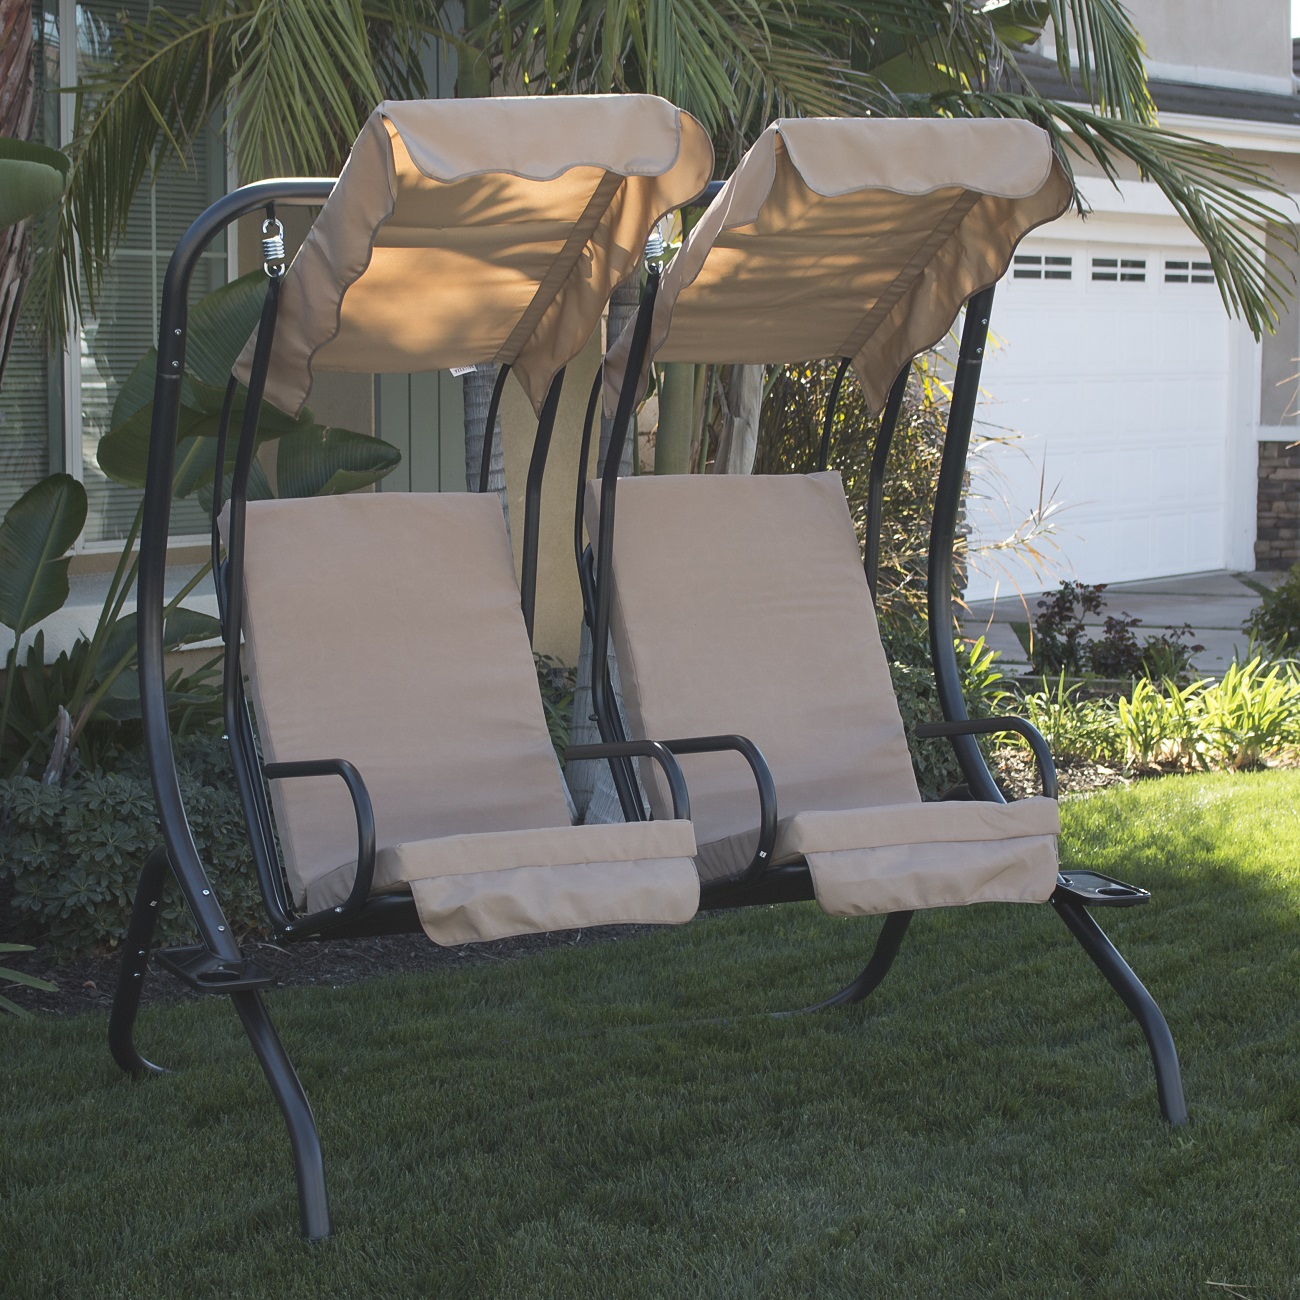 NEW Outdoor Swing Set 2Person Patio Frame Padded Seat